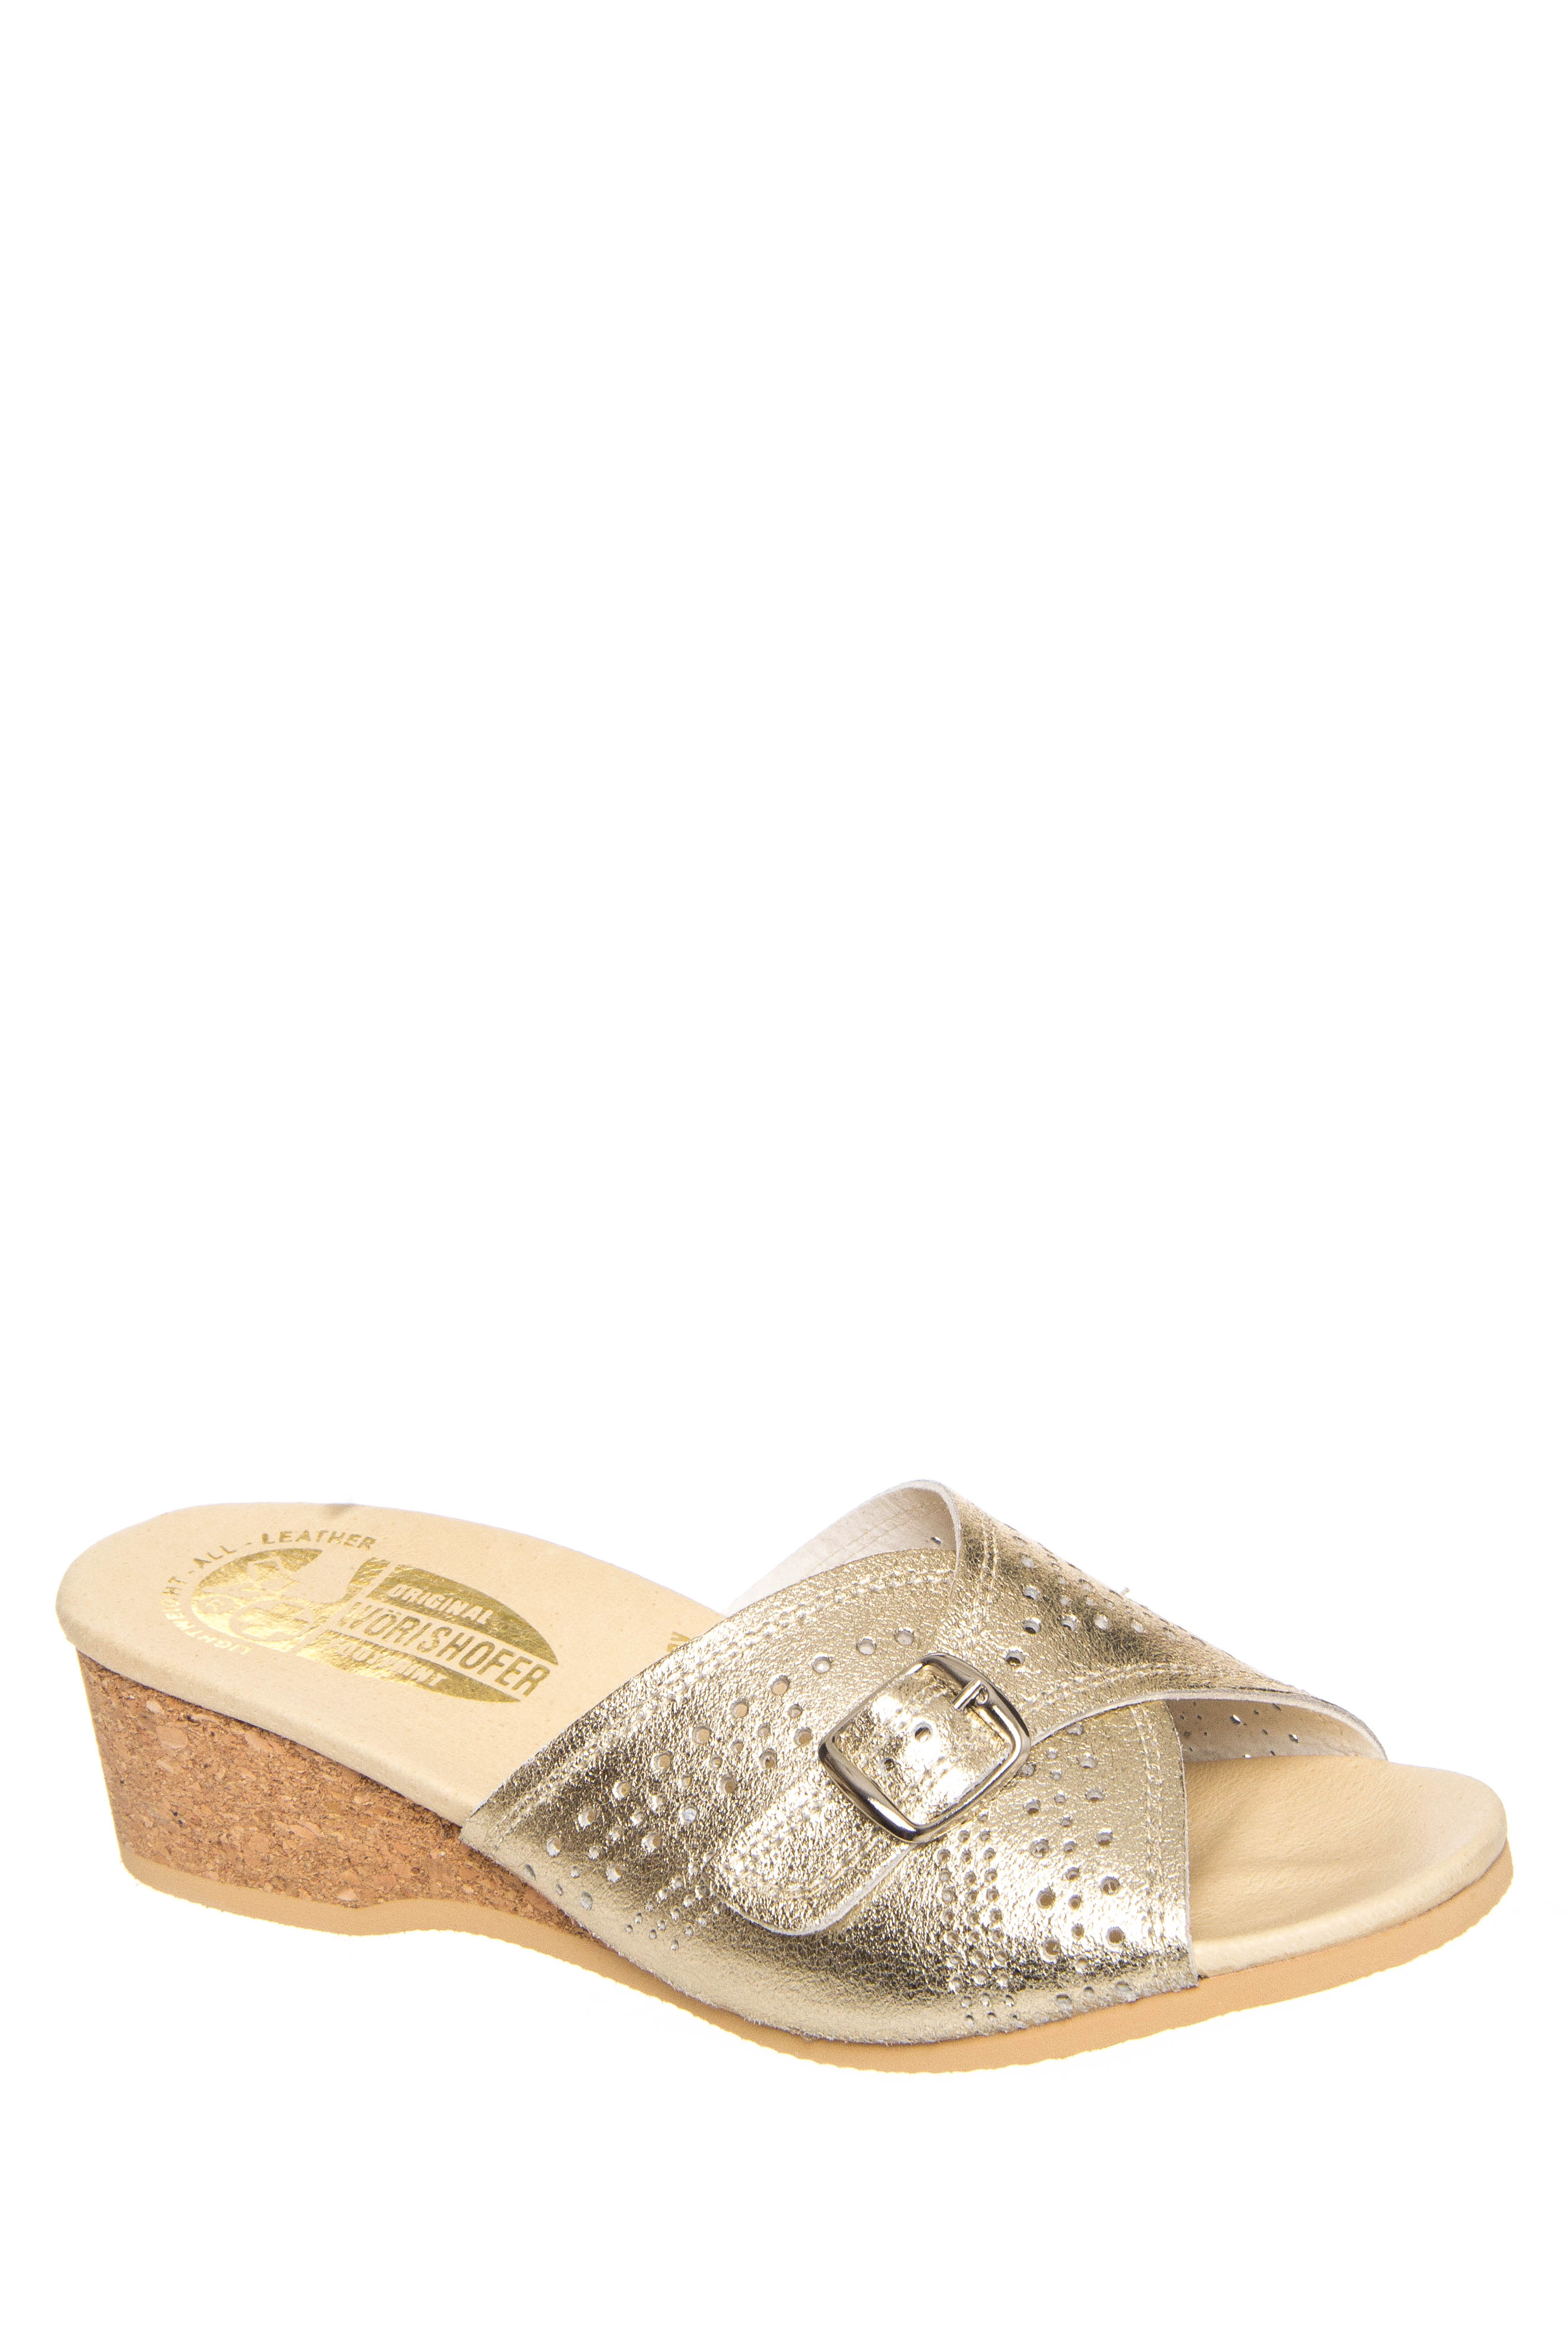 Worishofer 251 Low Wedge Sandals - Gold